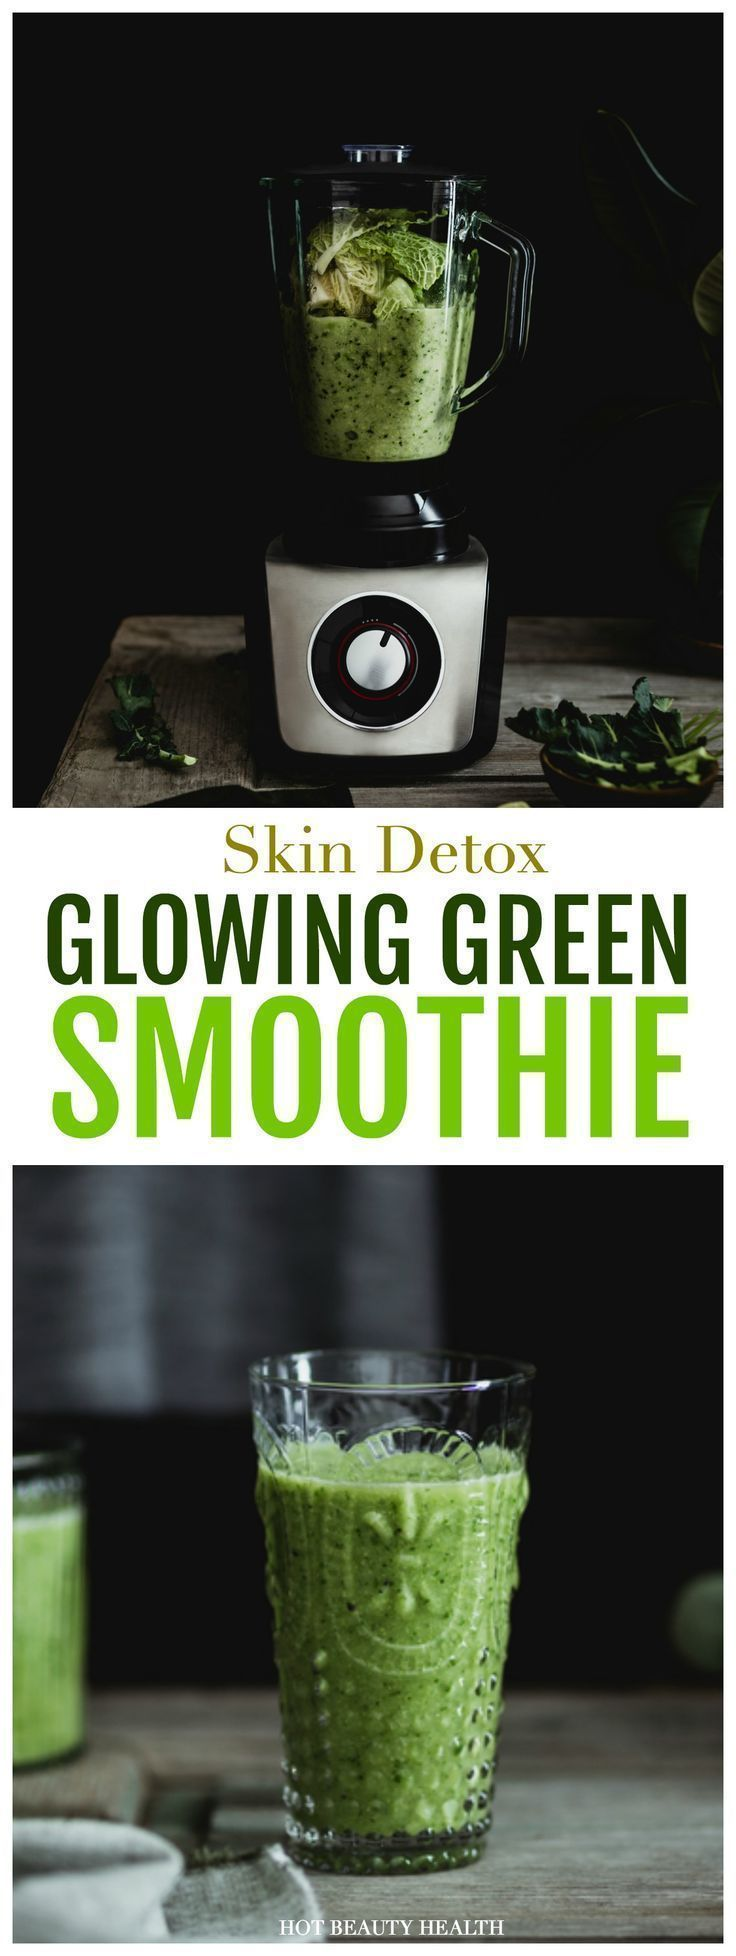 """Give your skin a beauty detox in the new year! This delicious green smoothie recipe will give you glowing skin and the fuel for a healthy weight loss. I like to call it the """"24 hour cleanse"""" because in one day, it can give your whole body a cleanse and I feel healthier too. Hot Beauty Health #smoothierecipe #smoothieguide #detox #GreenSmoothieForSkin"""